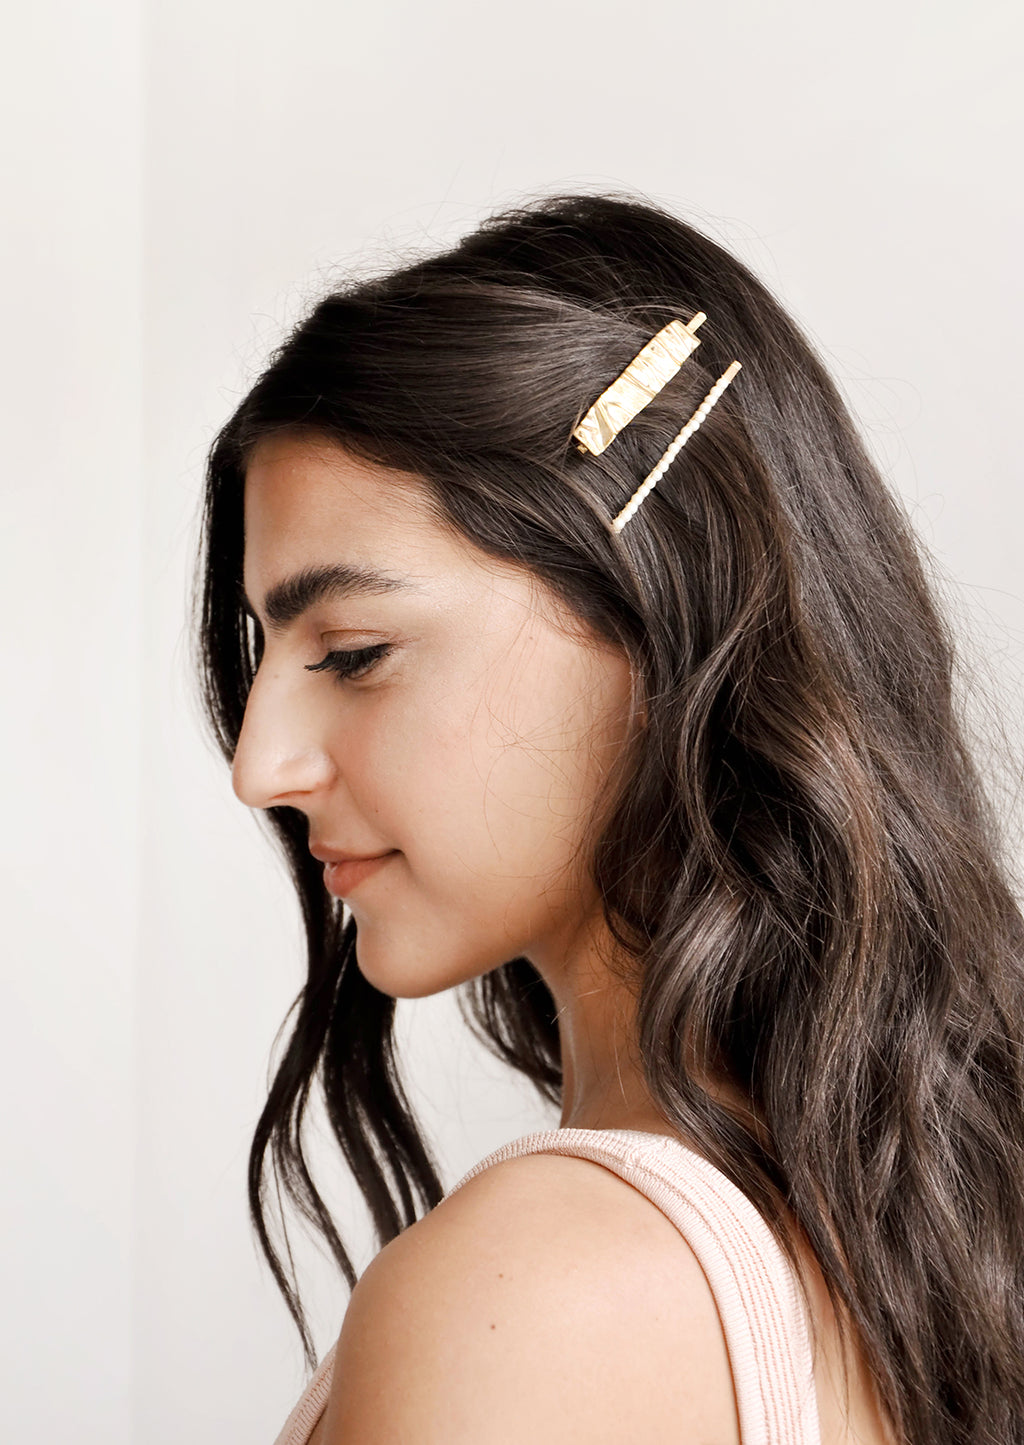 2: Two gold rectangular hair clips shown on model with brown hair